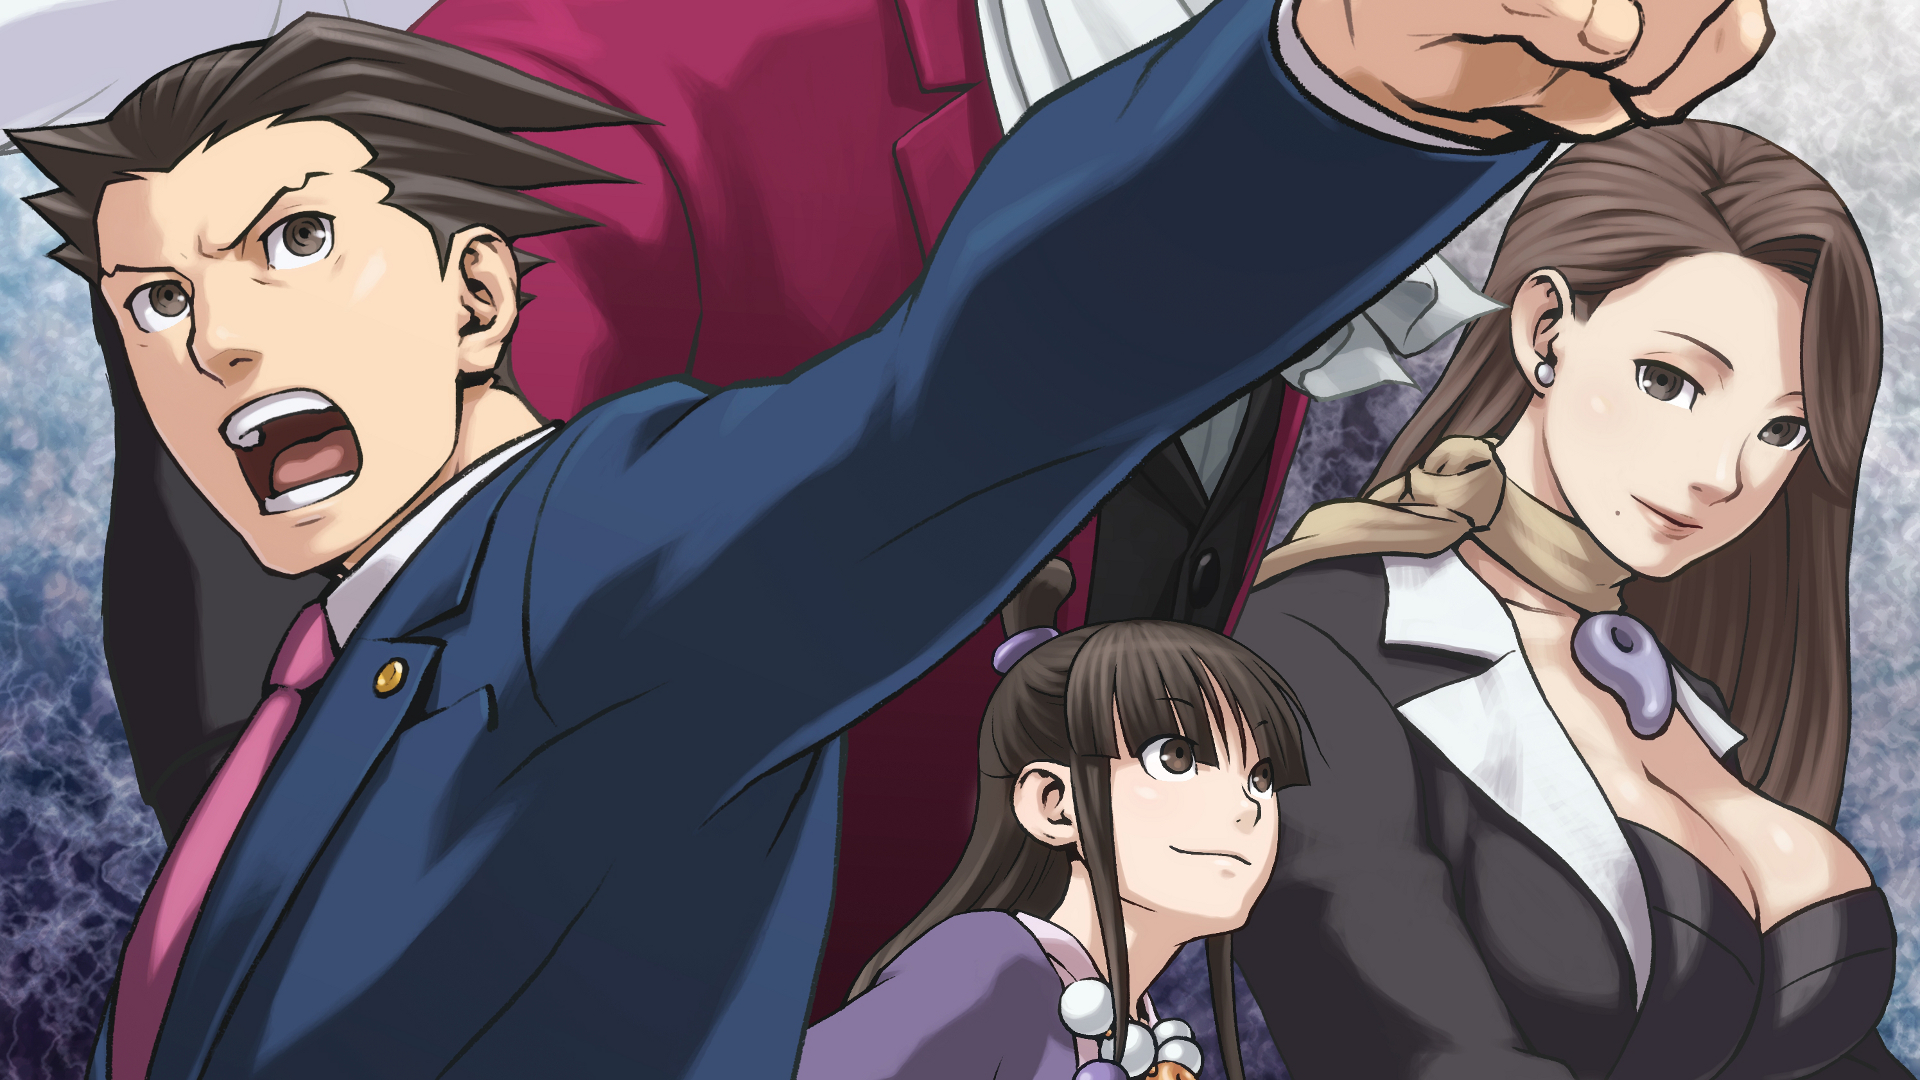 Win 10 Animated Wallpaper Phoenix Wright Trilogy Hd Review Court S Back In Session